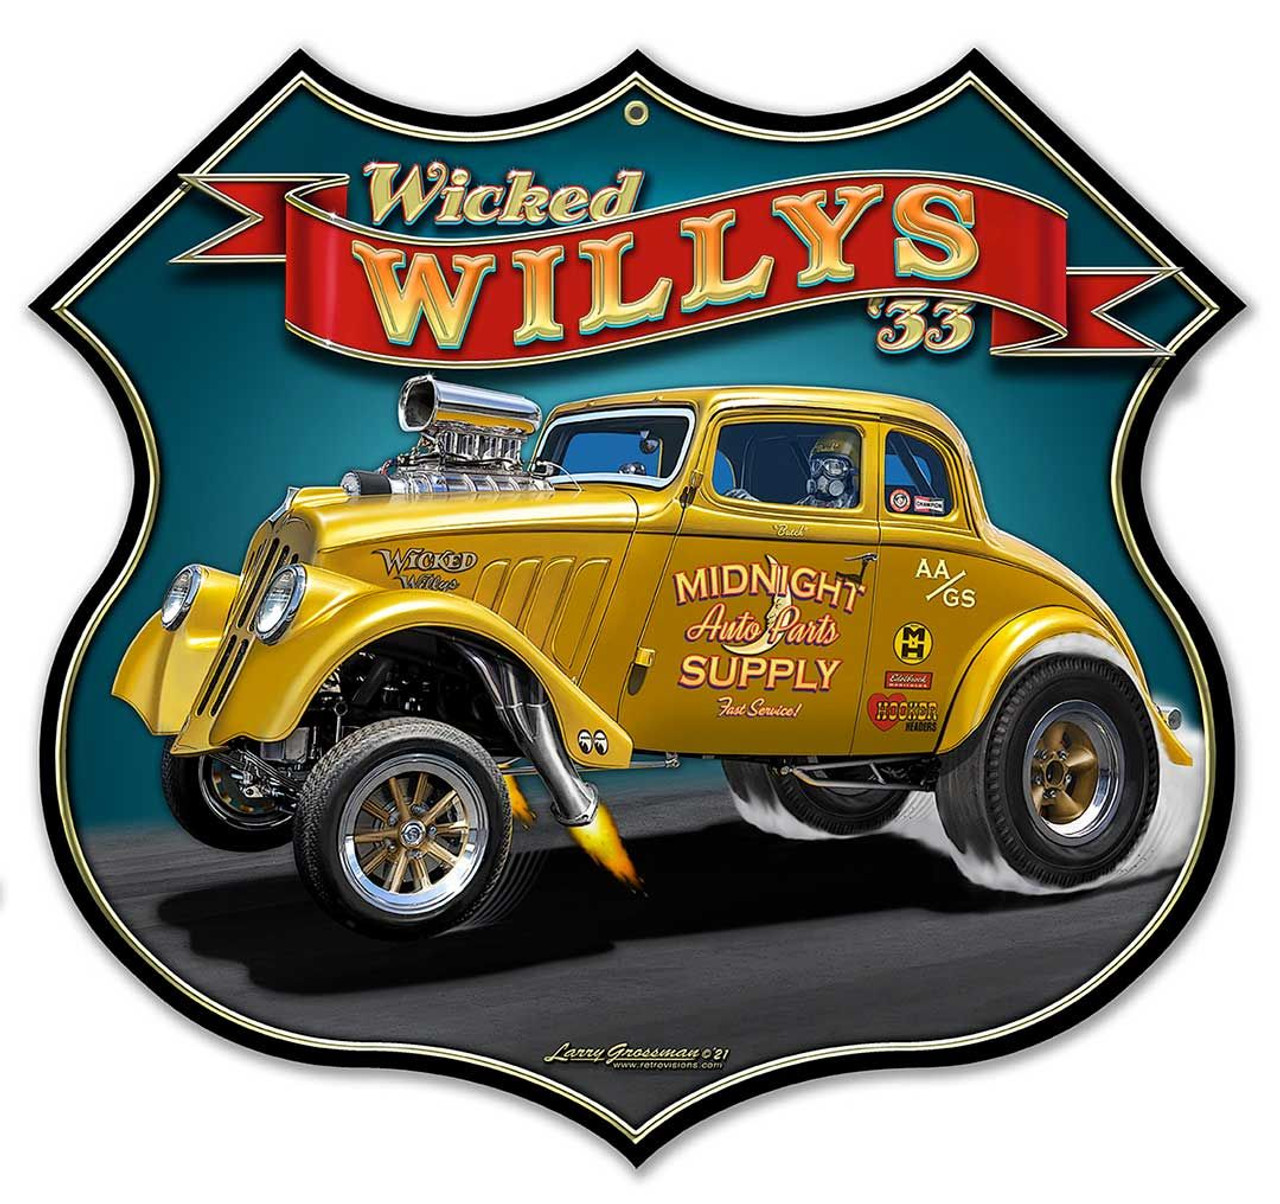 Wicked 1933 Willy's Shield Metal Sign 18 x 17 Inches